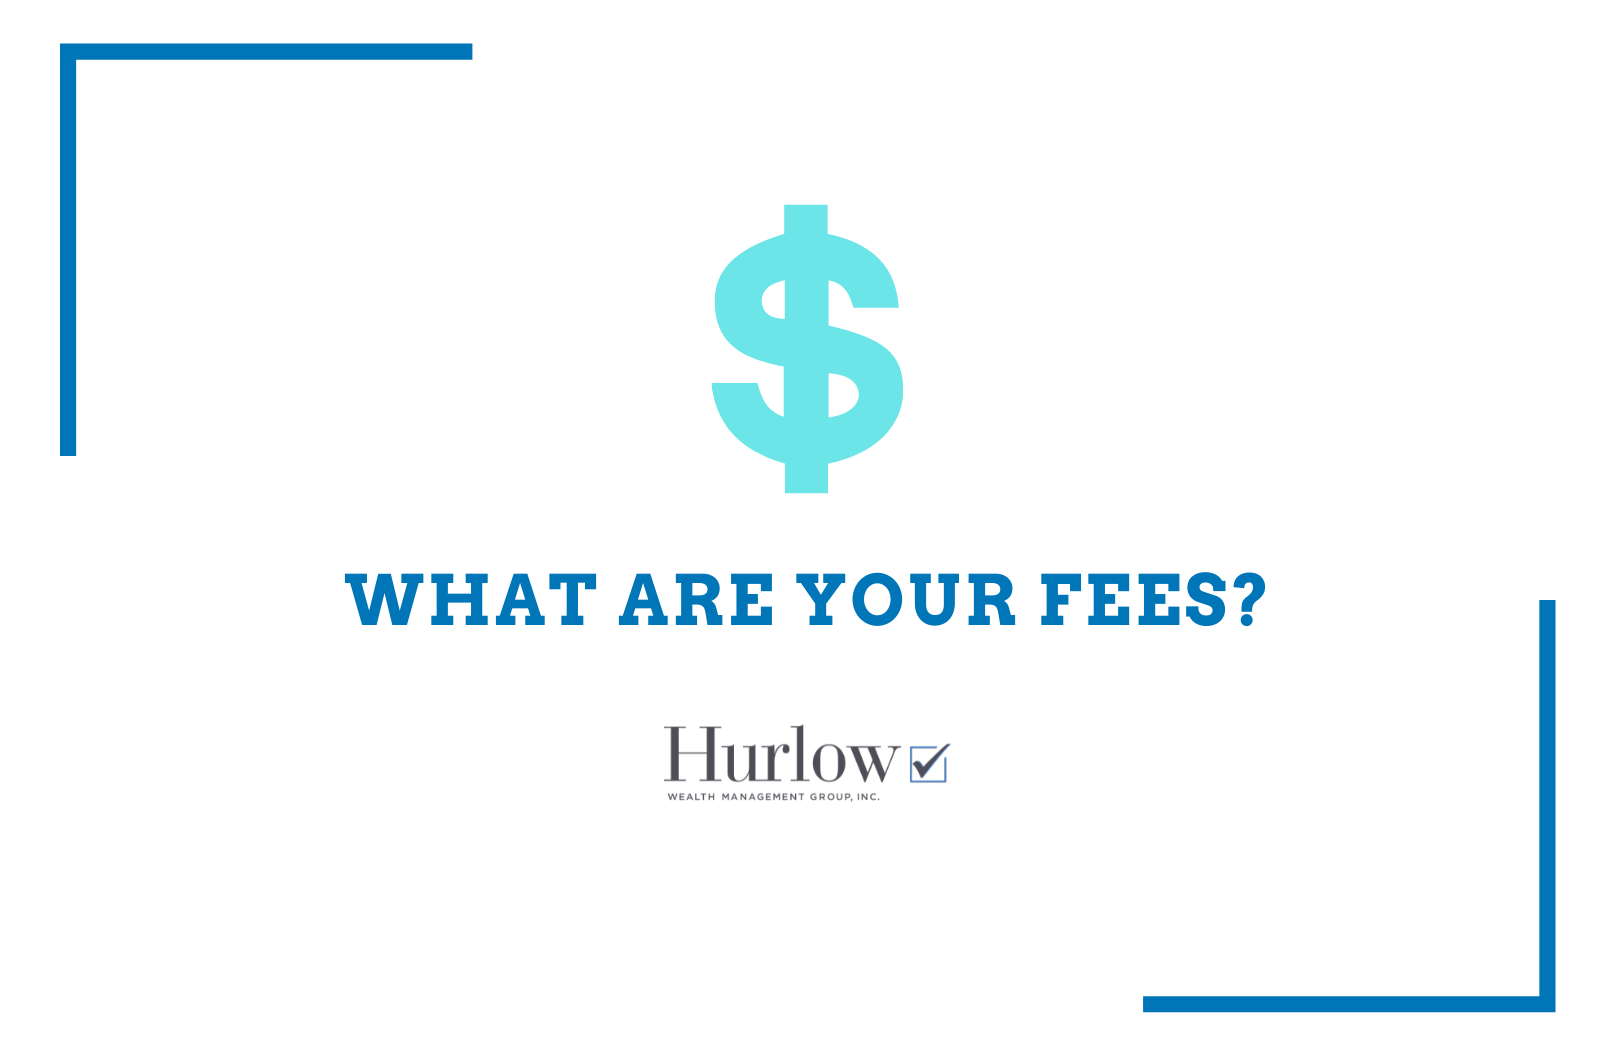 Our fees are based on the value of the investments that we manage on your behalf Thumbnail